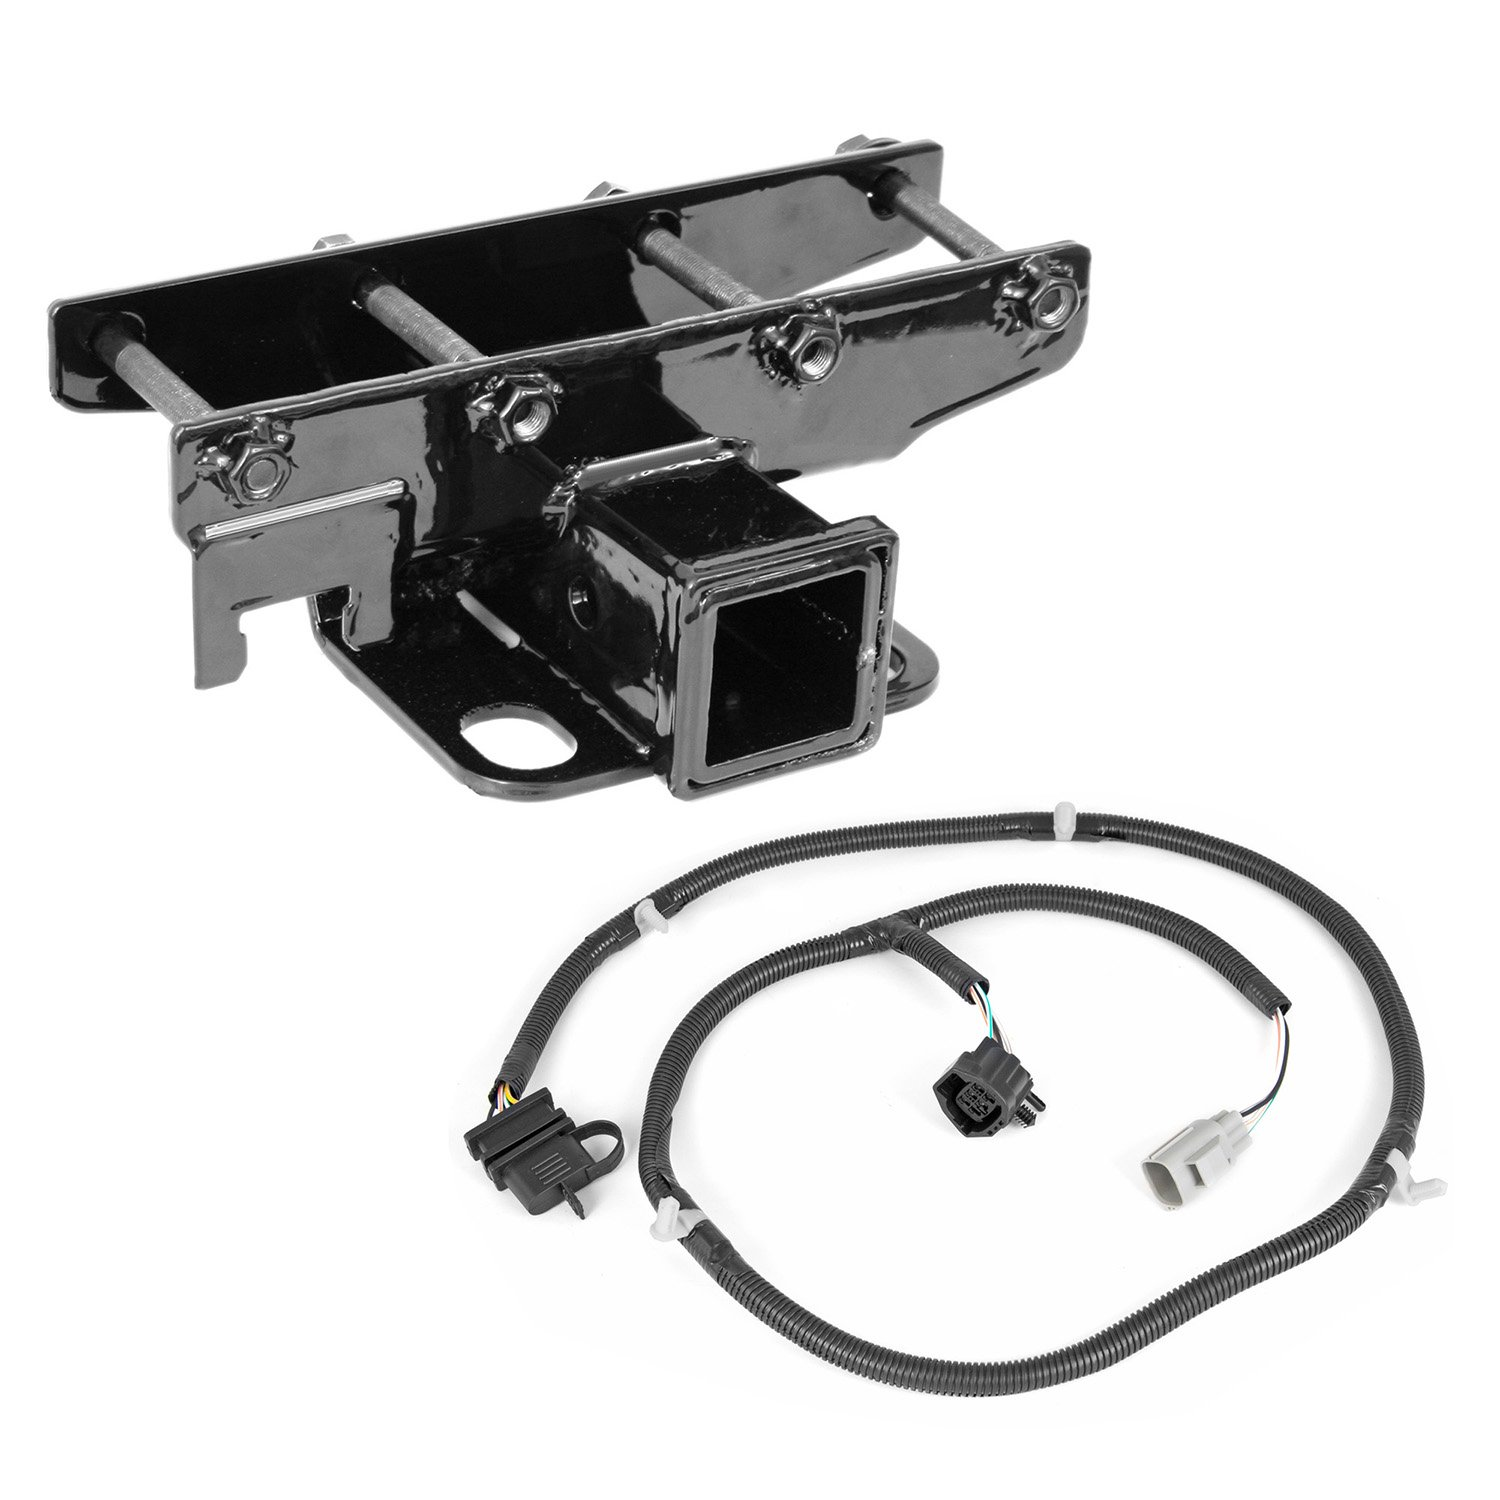 Outland 391158051 Receiver Hitch Kit with Wiring Harness for JK